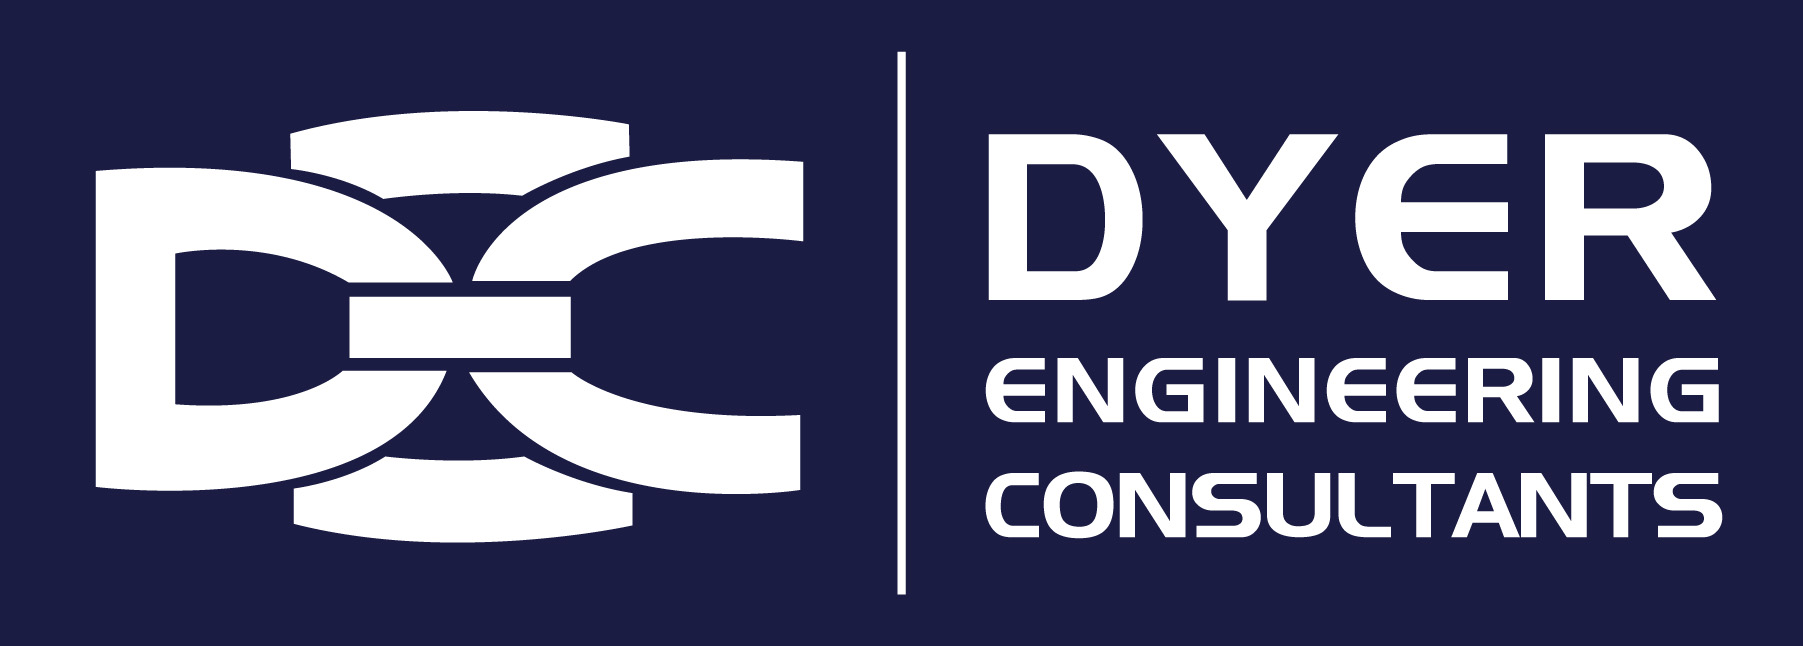 Dyer Engineering Logo.jpg